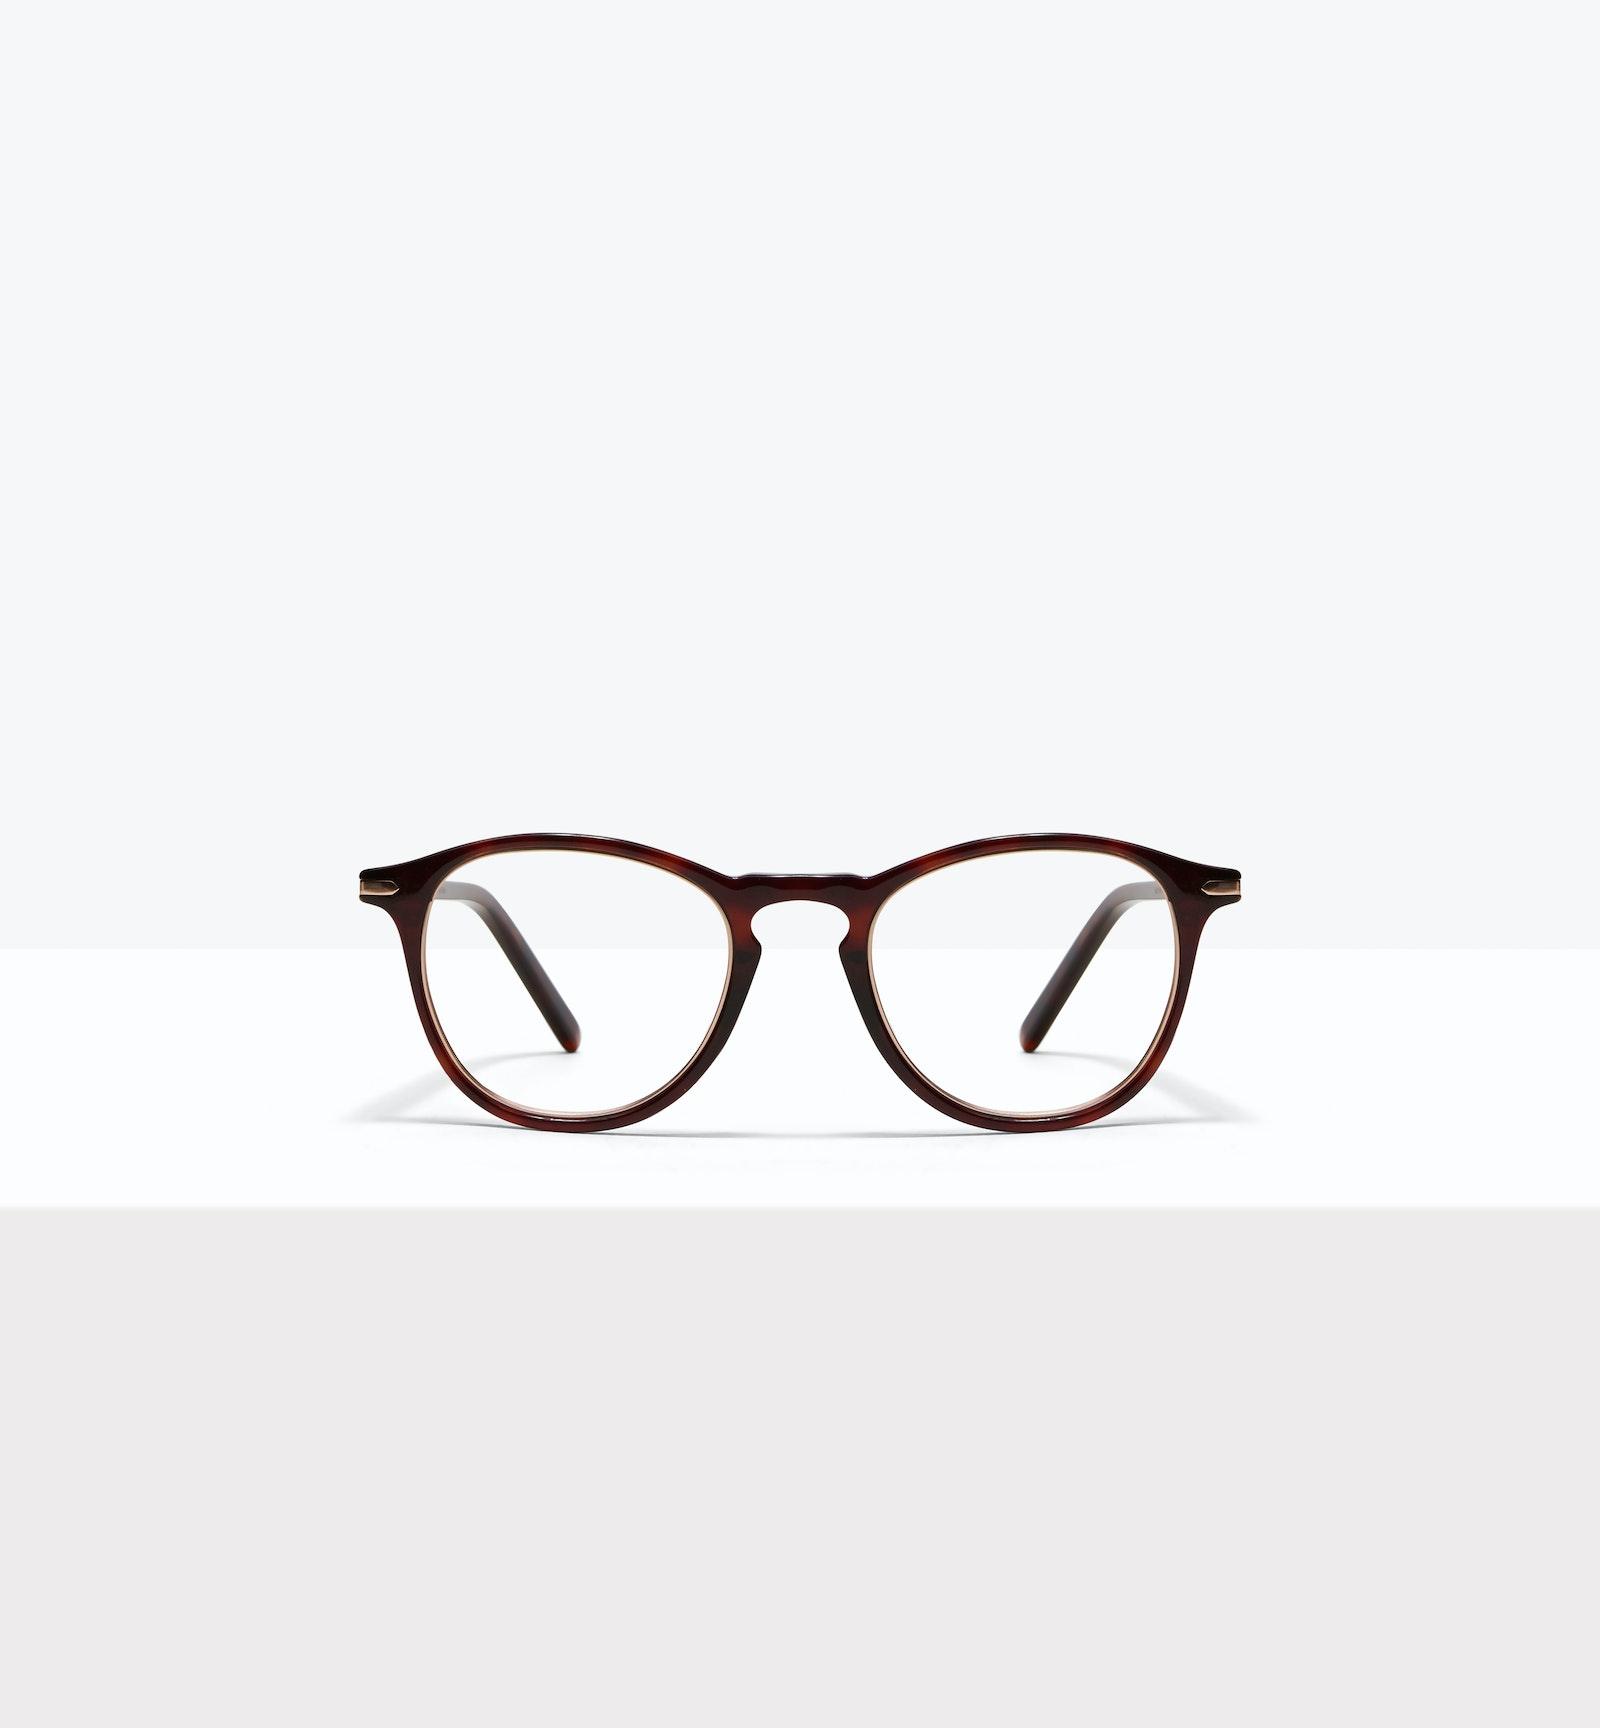 Affordable Fashion Glasses Round Eyeglasses Men Looks Tortoise